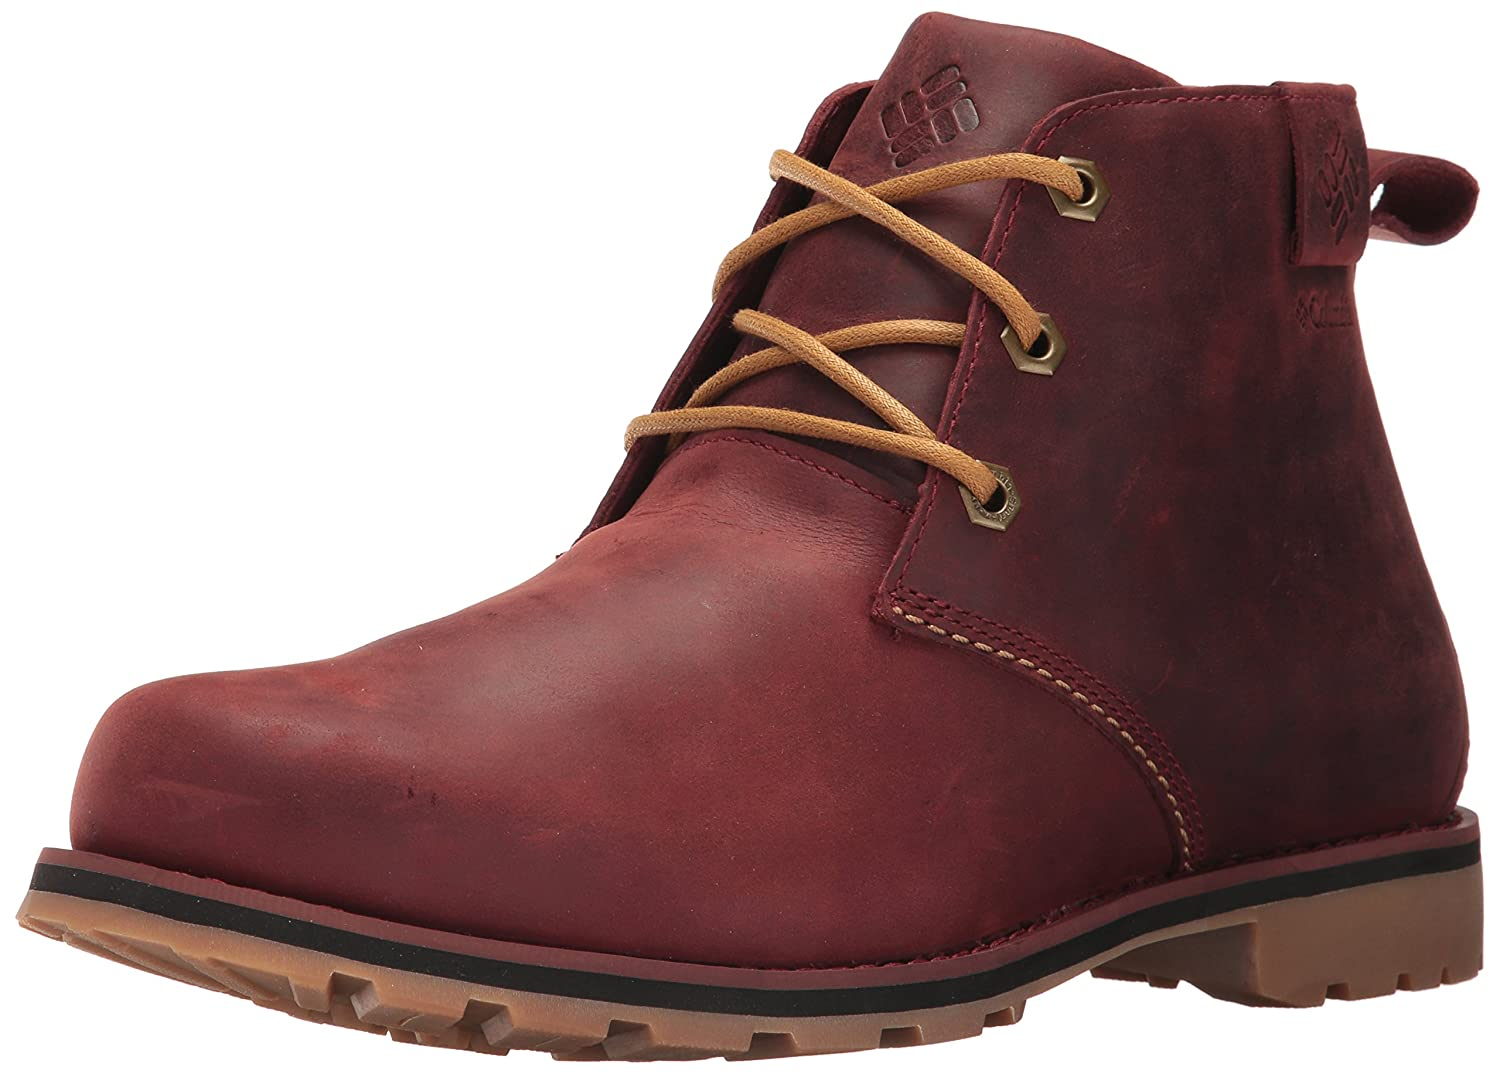 Columbia メンズ Madder Brown, Mountain Red 11 D(M) US 11 D(M) USMadder Brown, Mountain Red B01N6HCFDQ